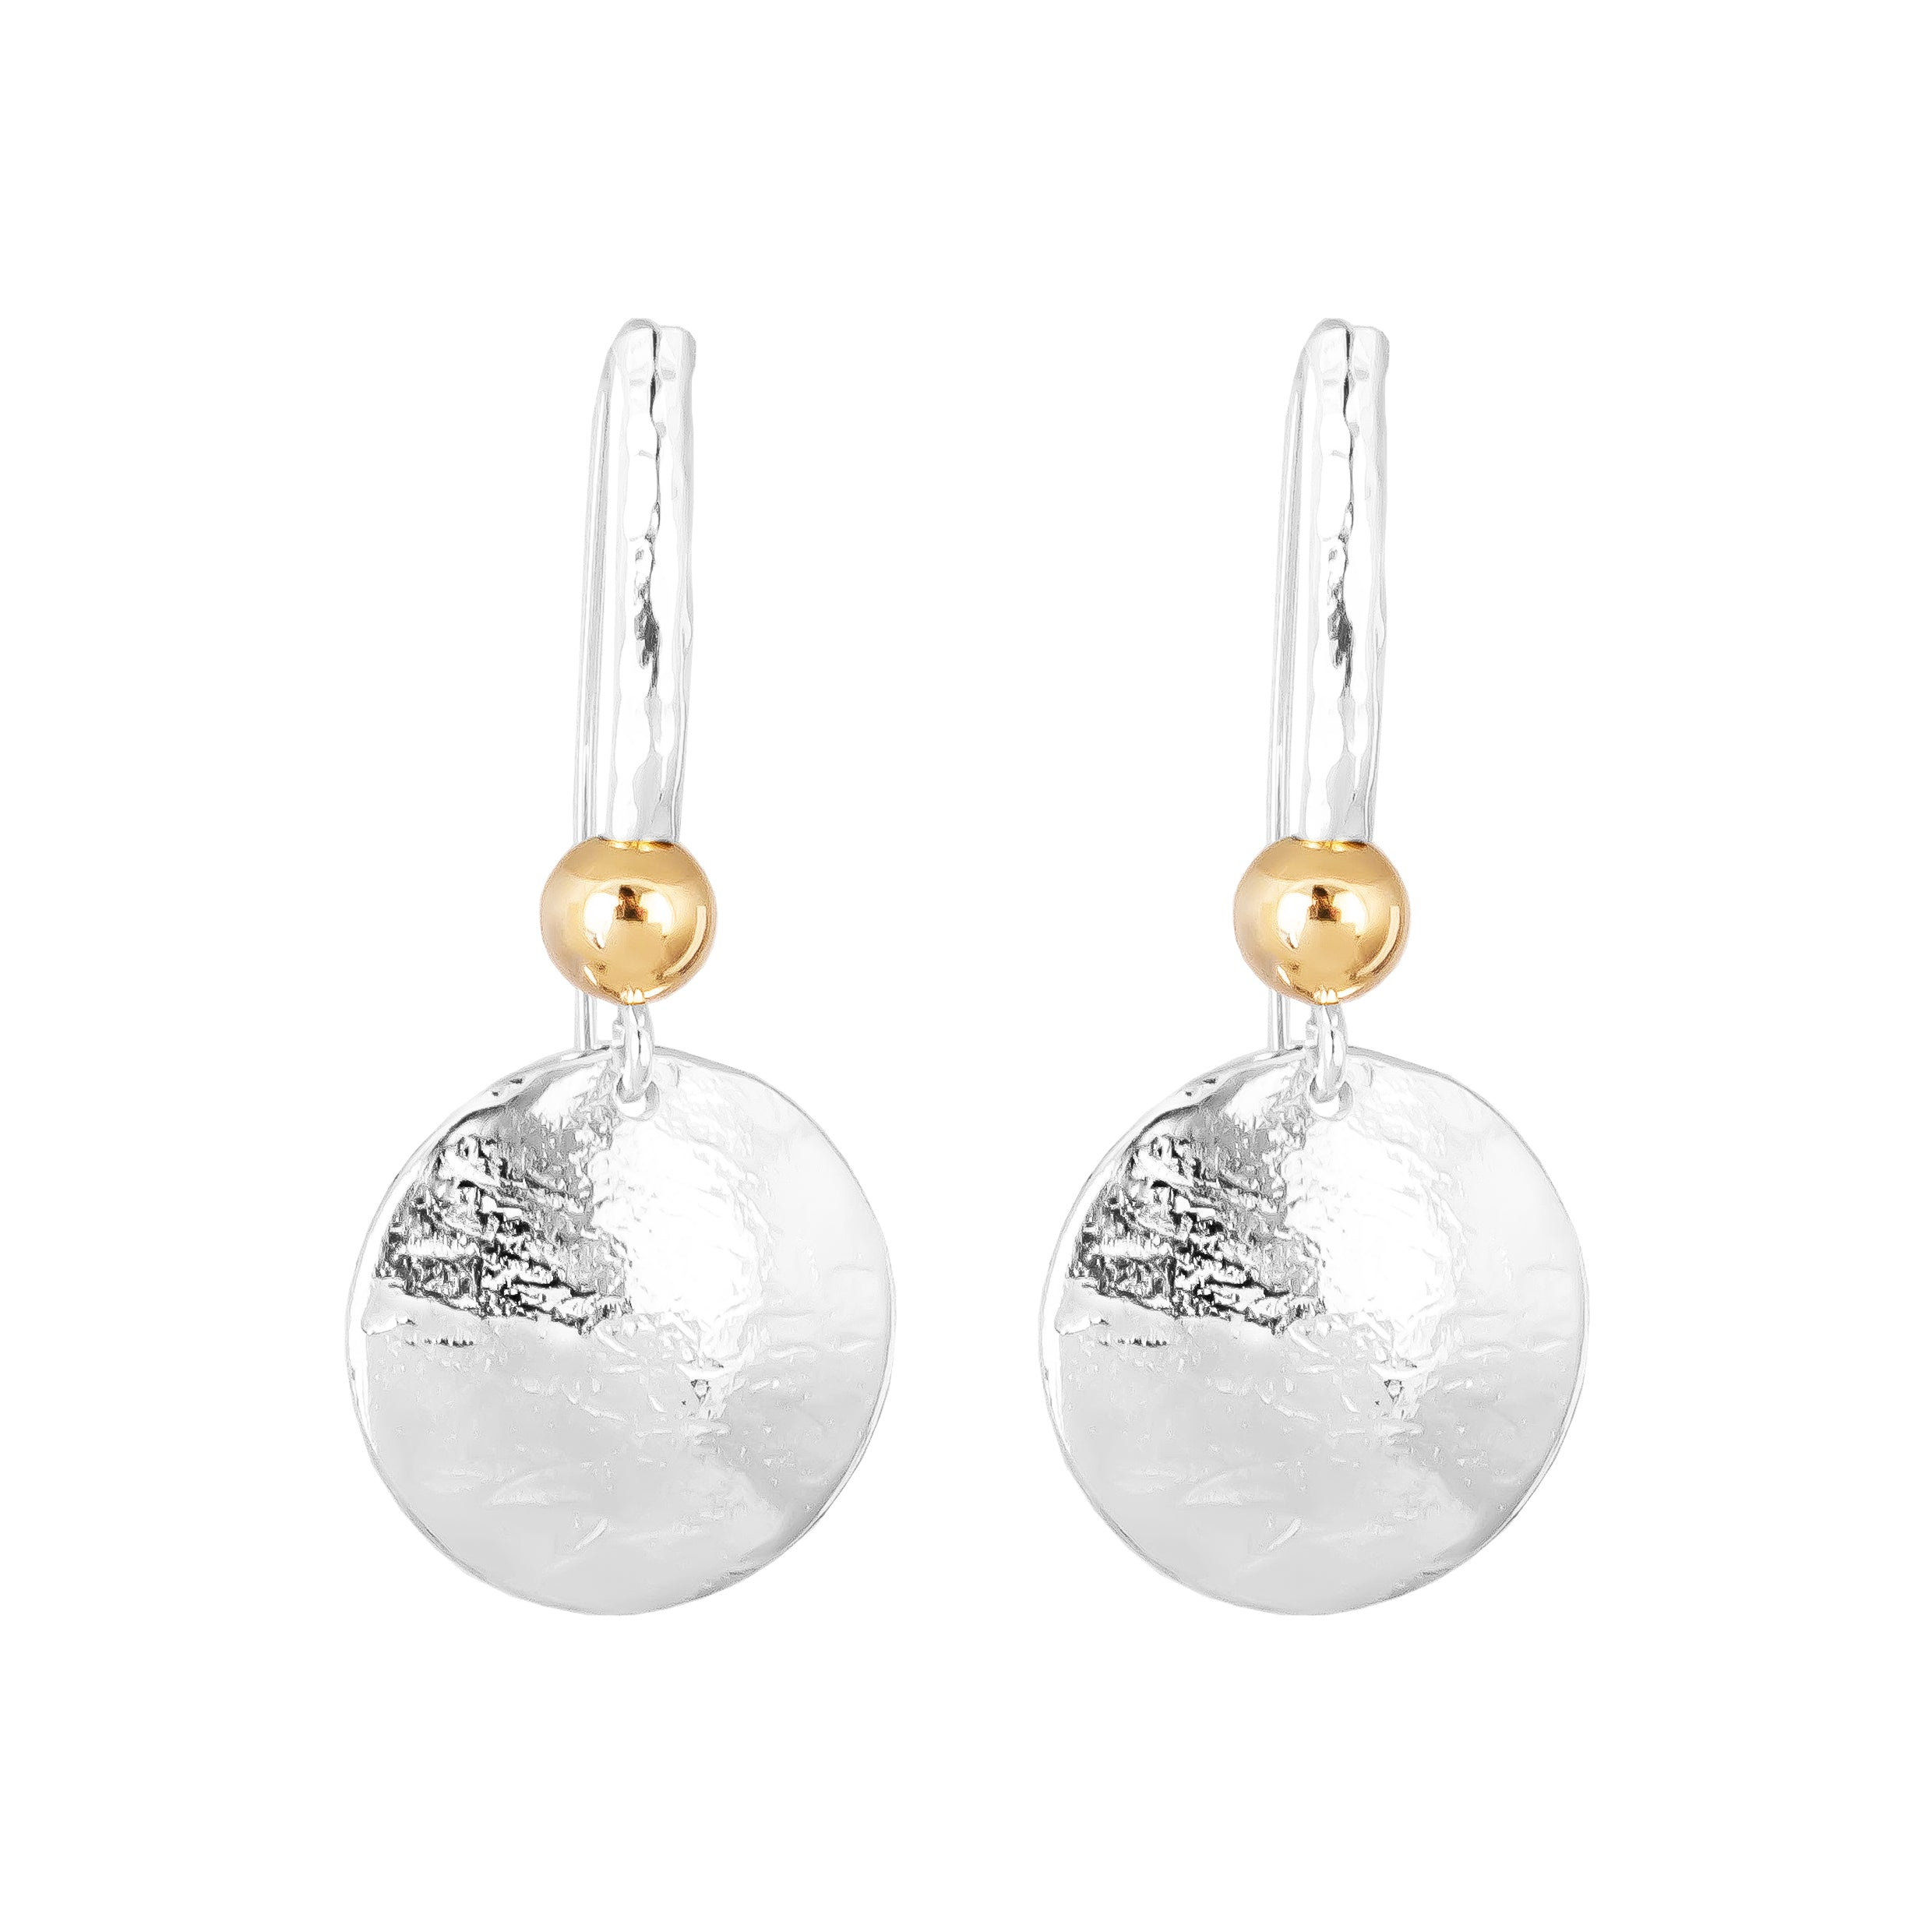 Tatla Disc Earrings With Statement Hook | Polished Gold Detail